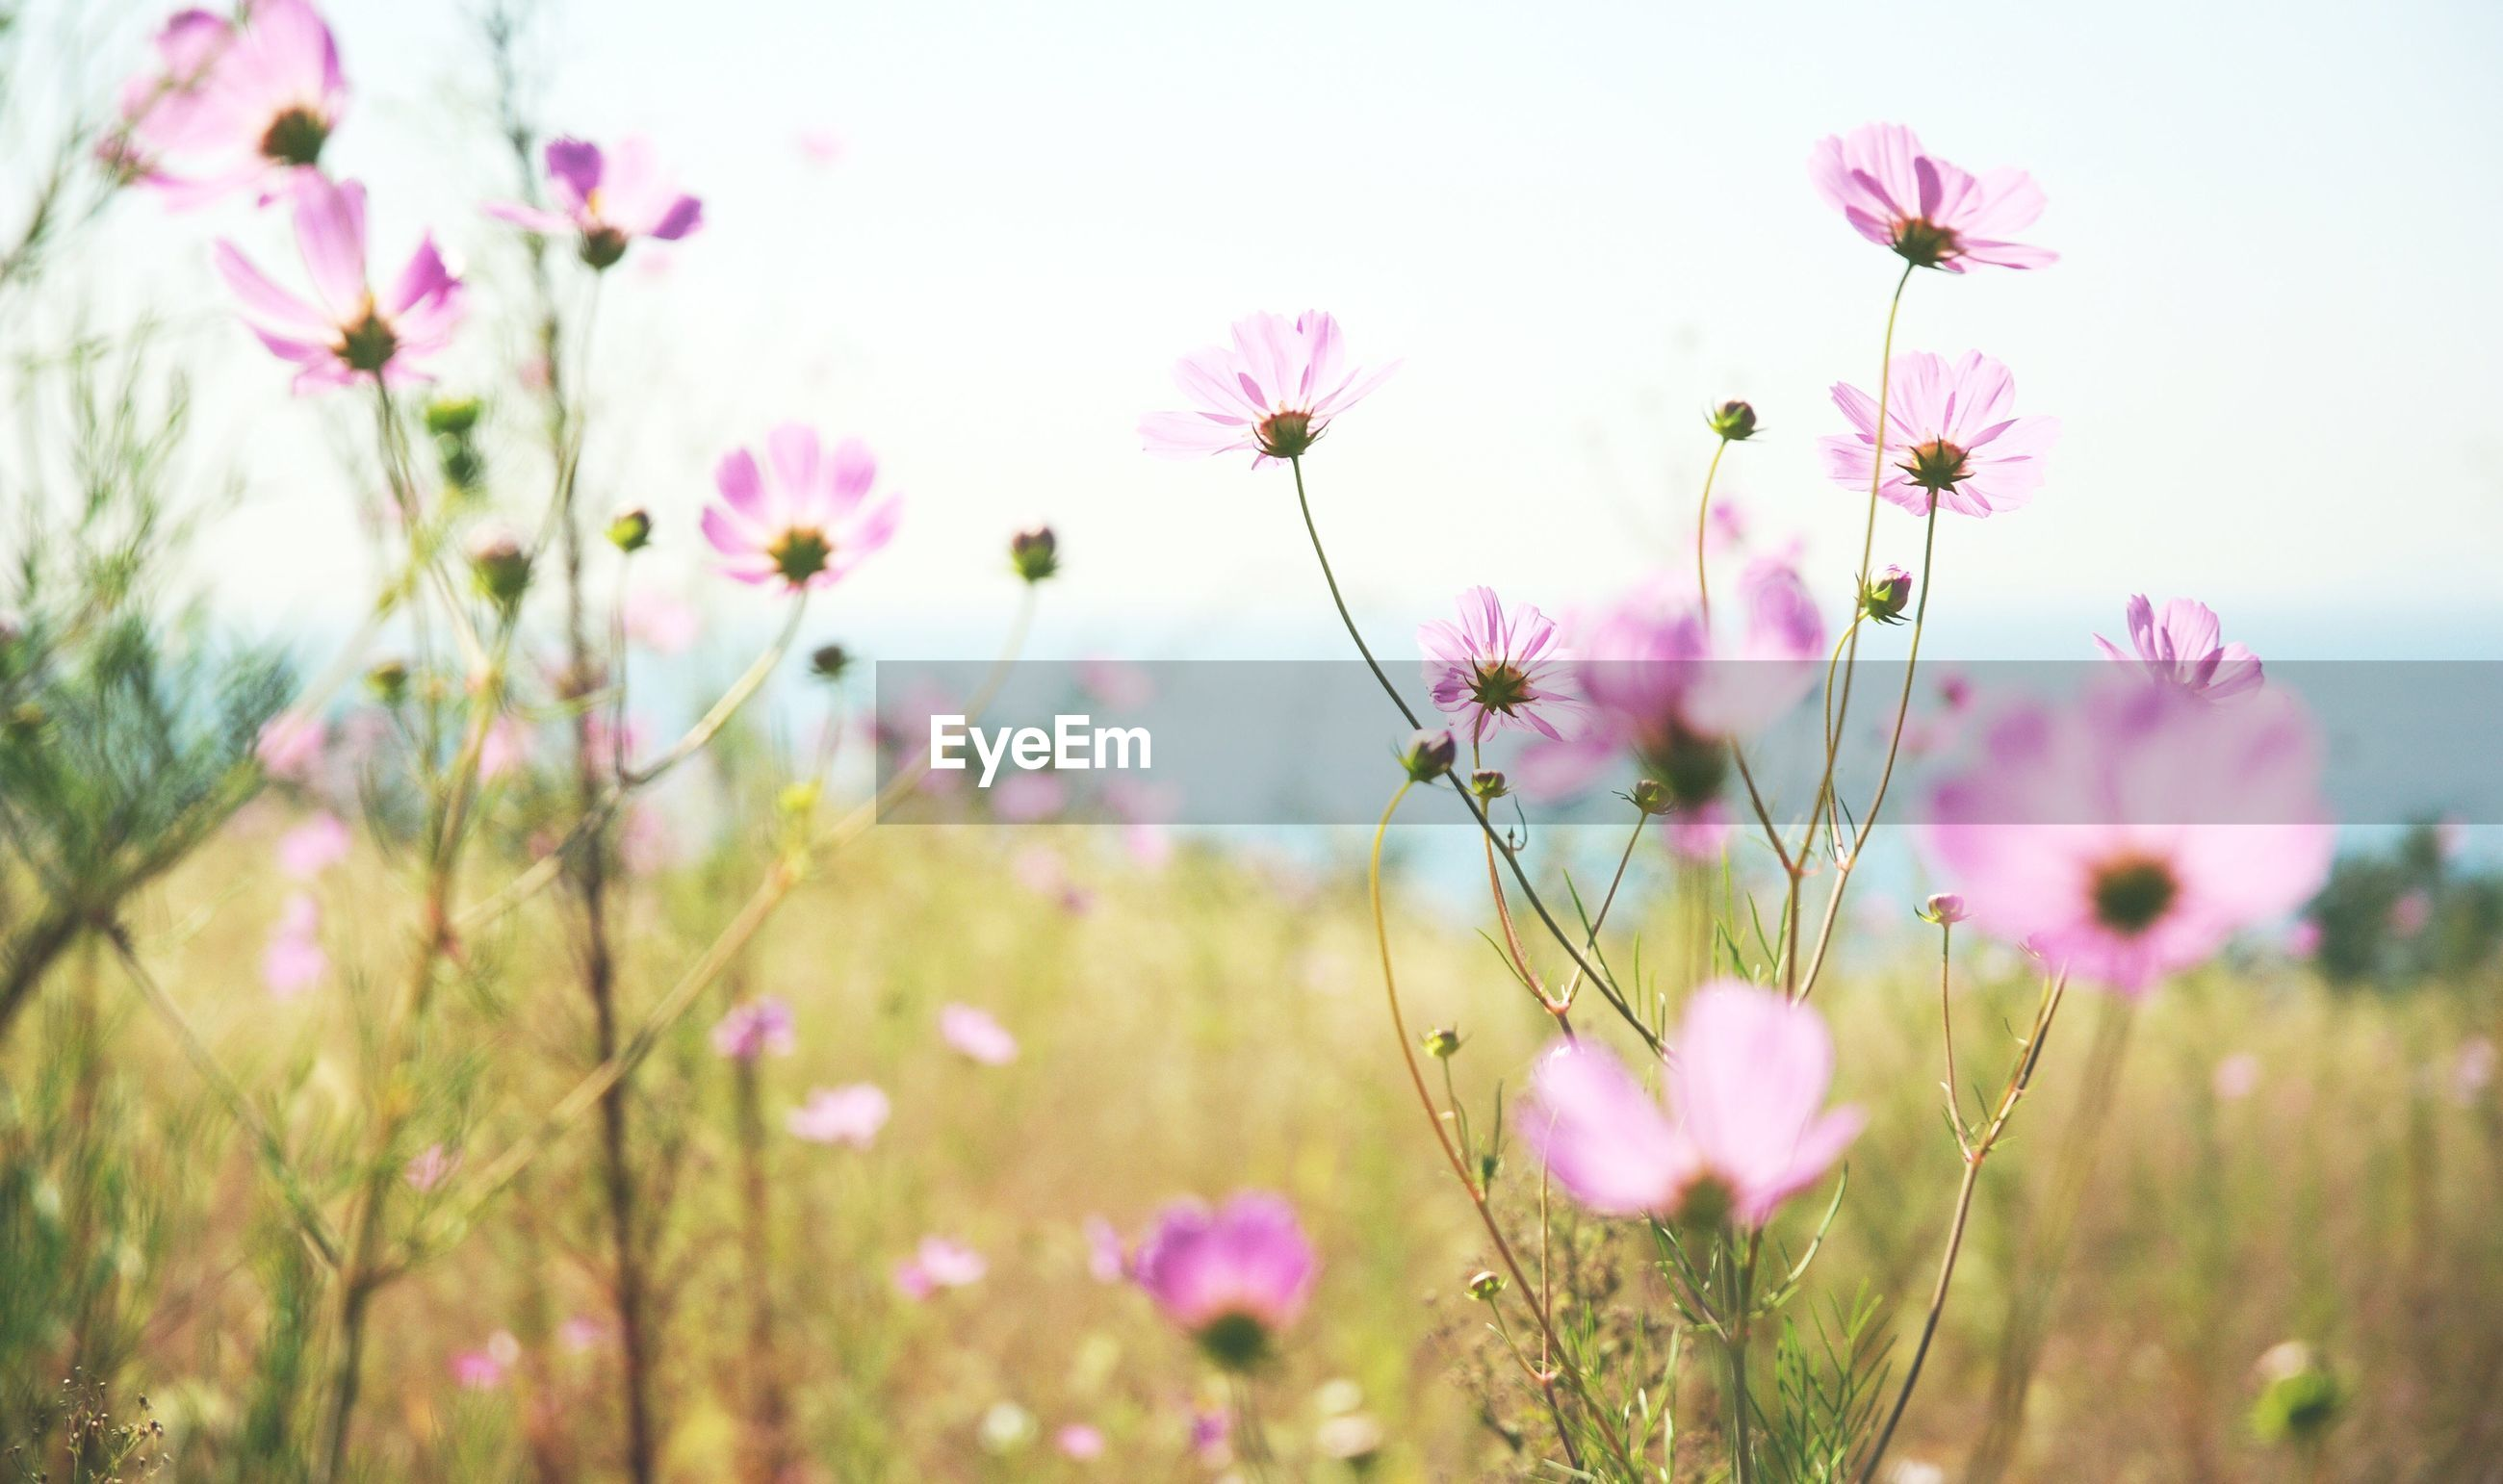 CLOSE-UP OF COSMOS FLOWERS BLOOMING ON FIELD